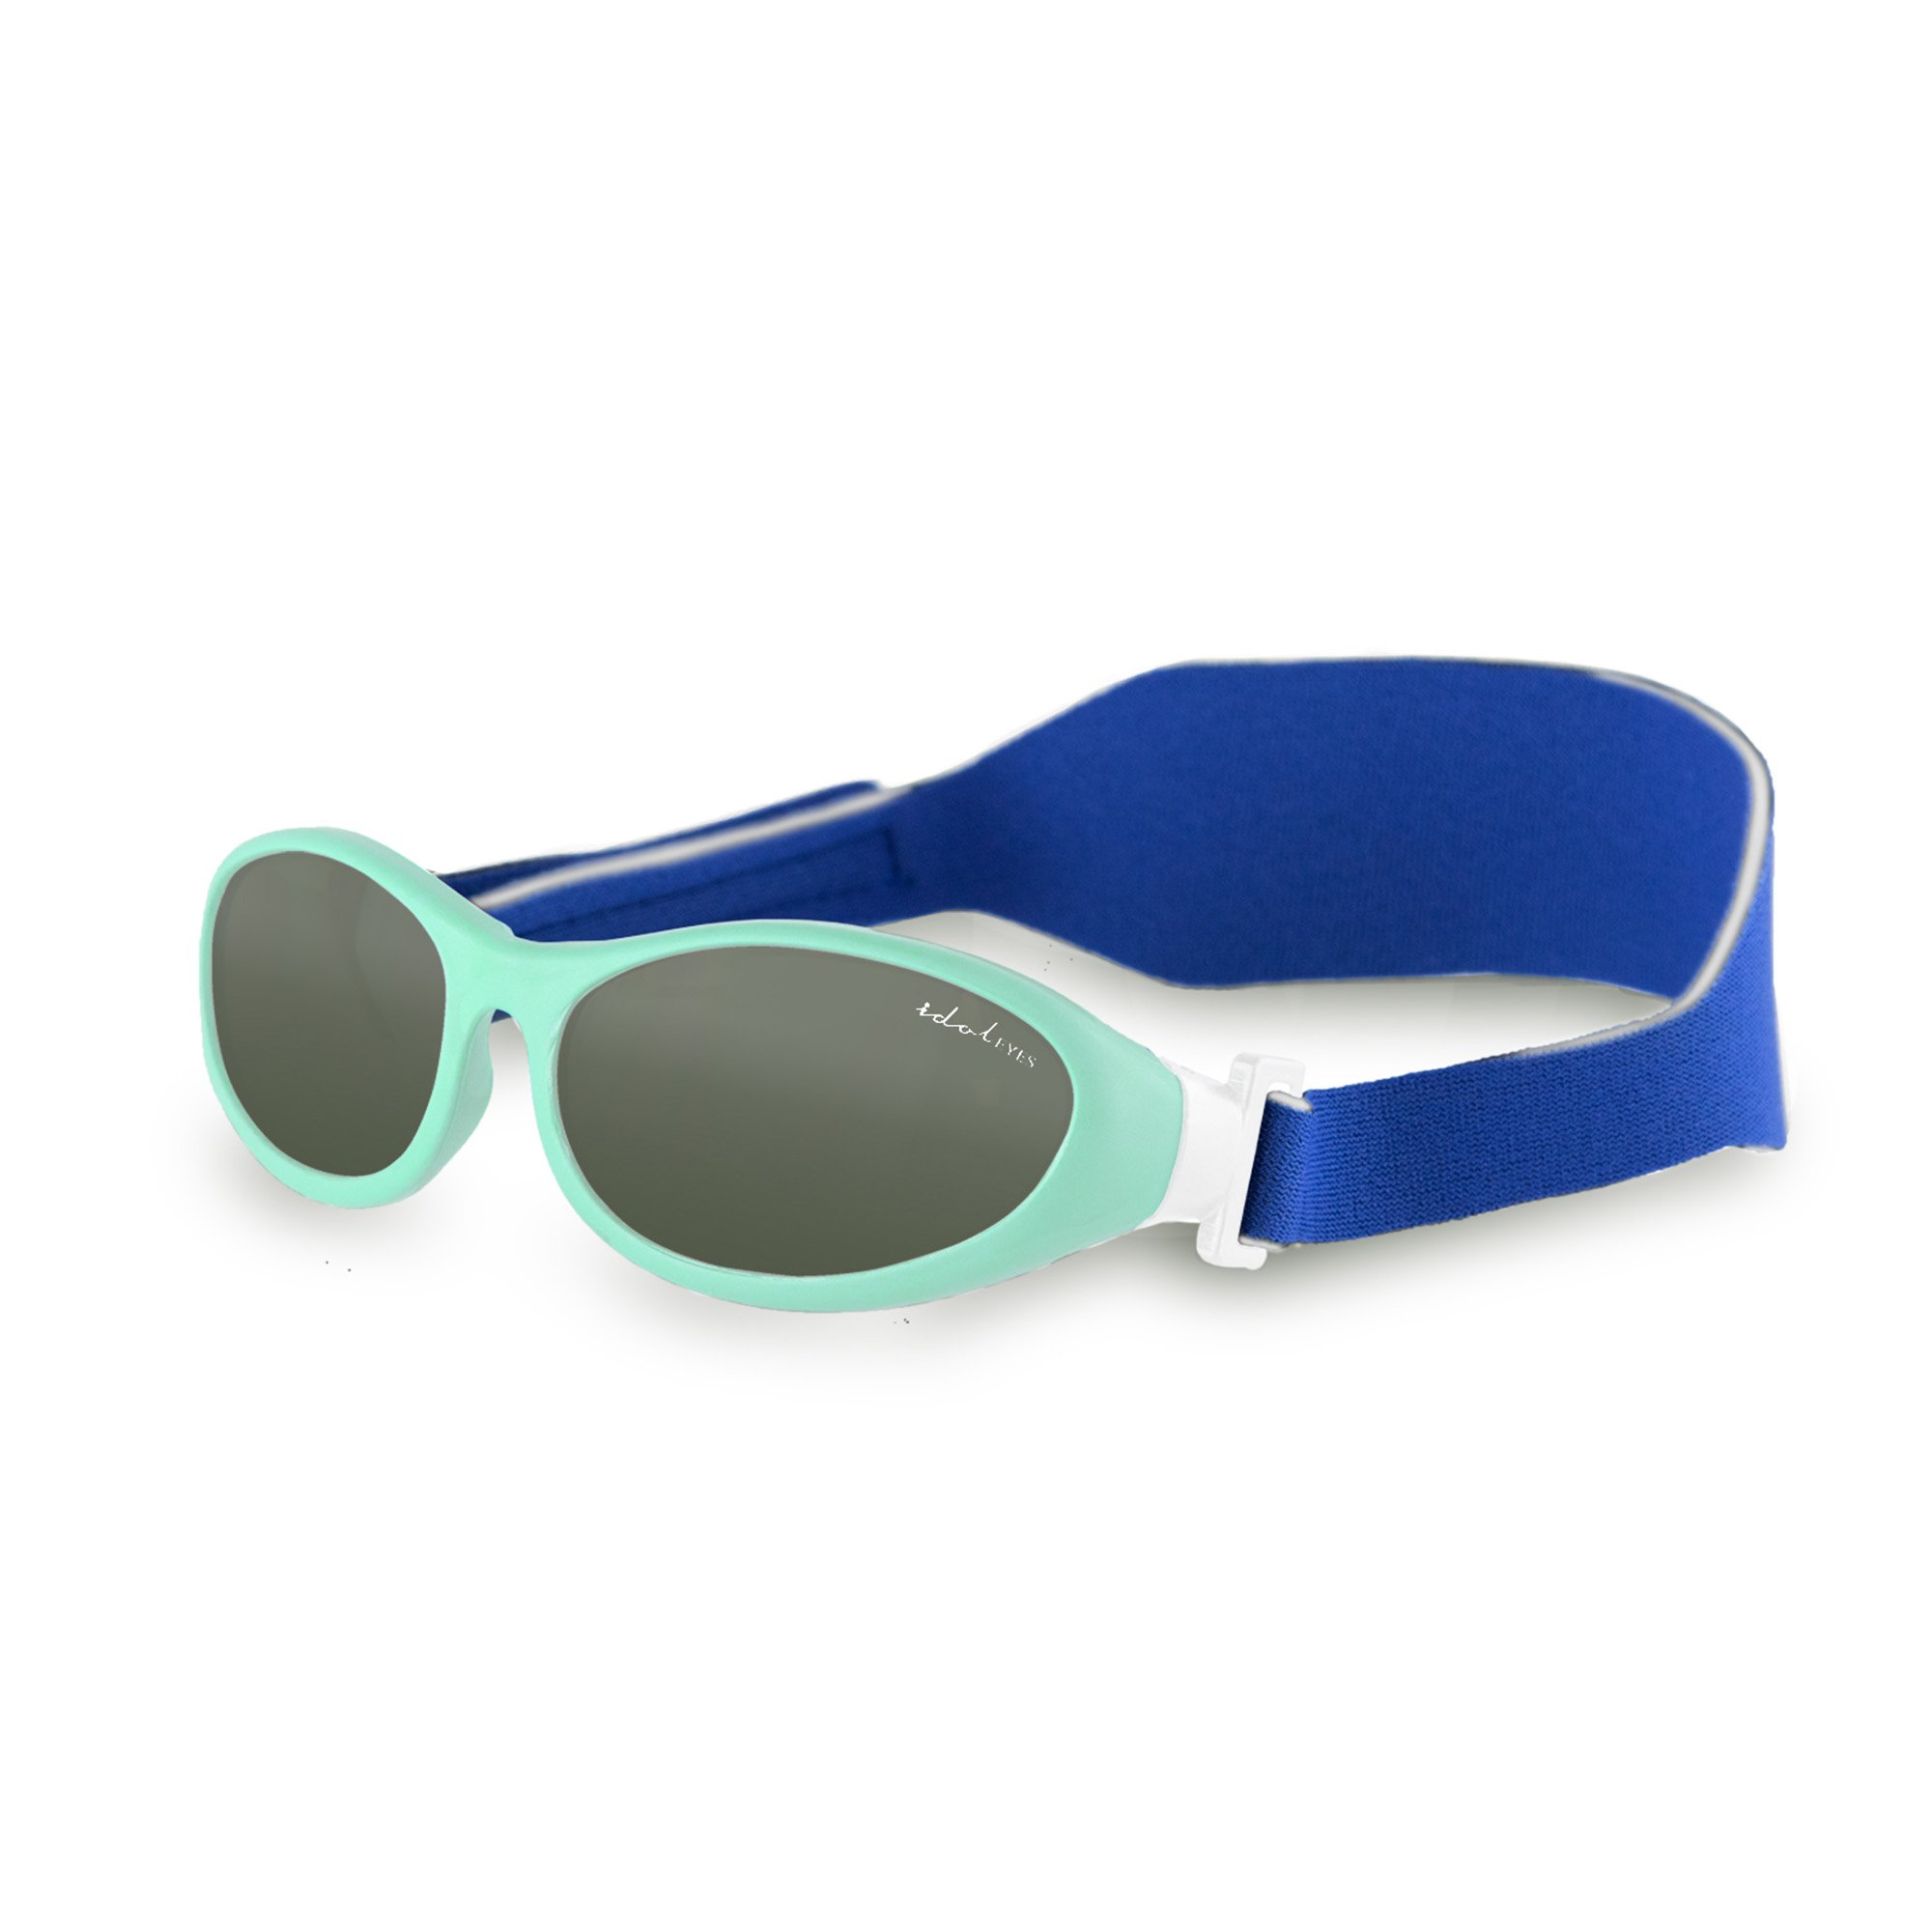 "c33a87fb1aa Get Quotations · Idol Eyes Kids Sunglasses for Kids - ""Baby Wrapz 2"" 100%  UV Protection"